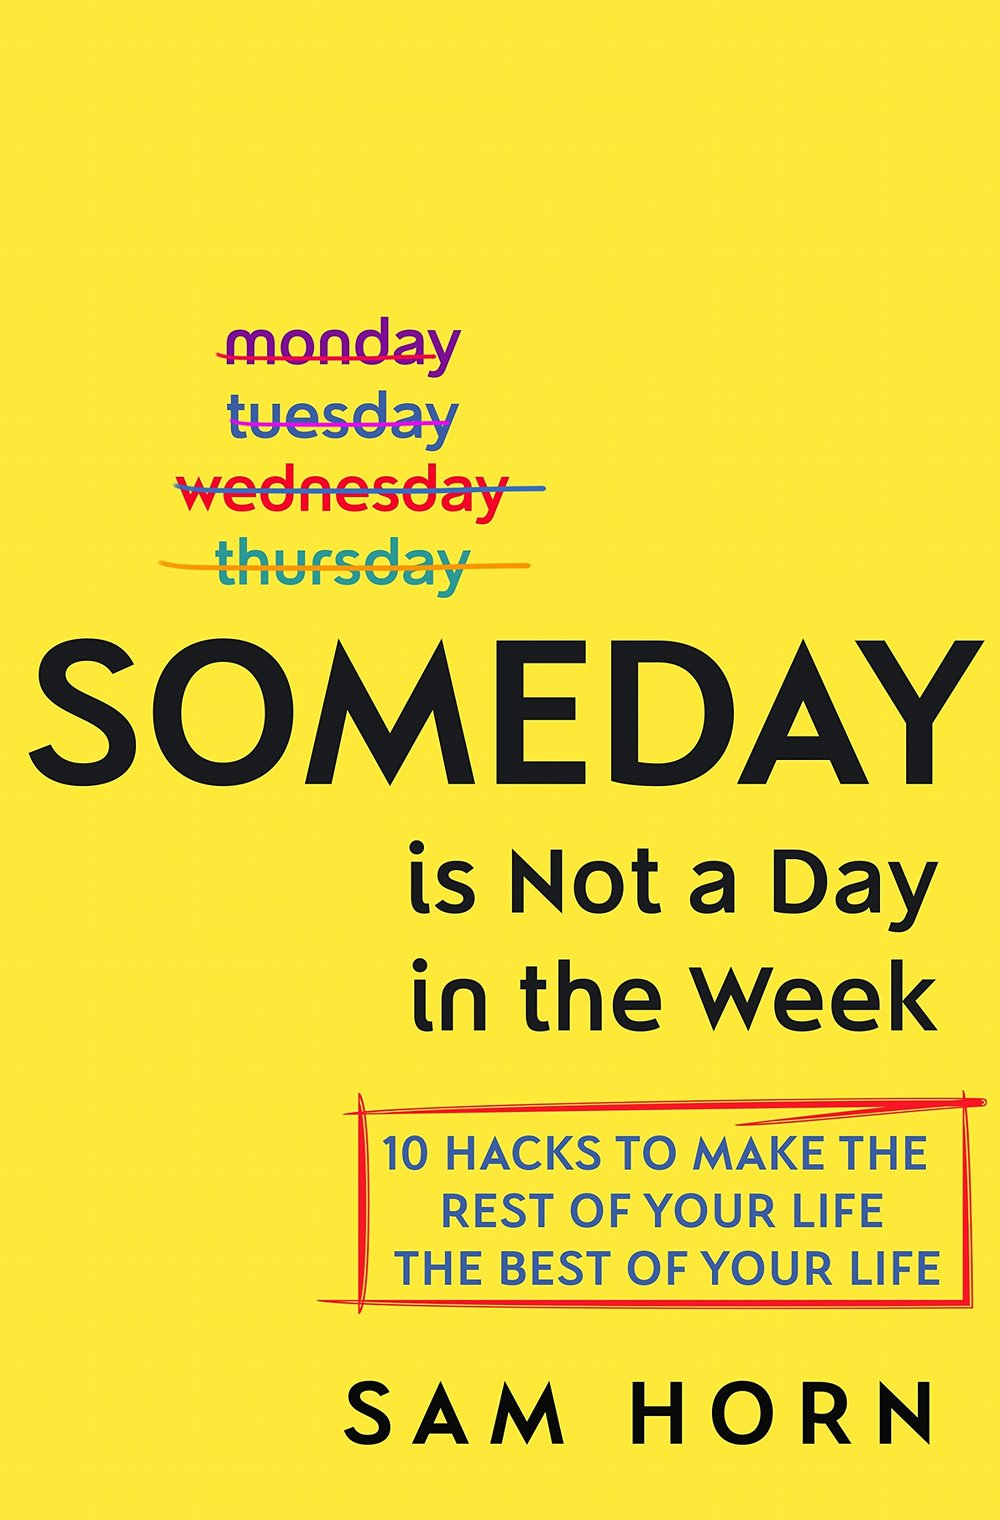 SOMEDAY is Not a Day in the Week - 10 Hacks to make the rest of your life the best of your life.